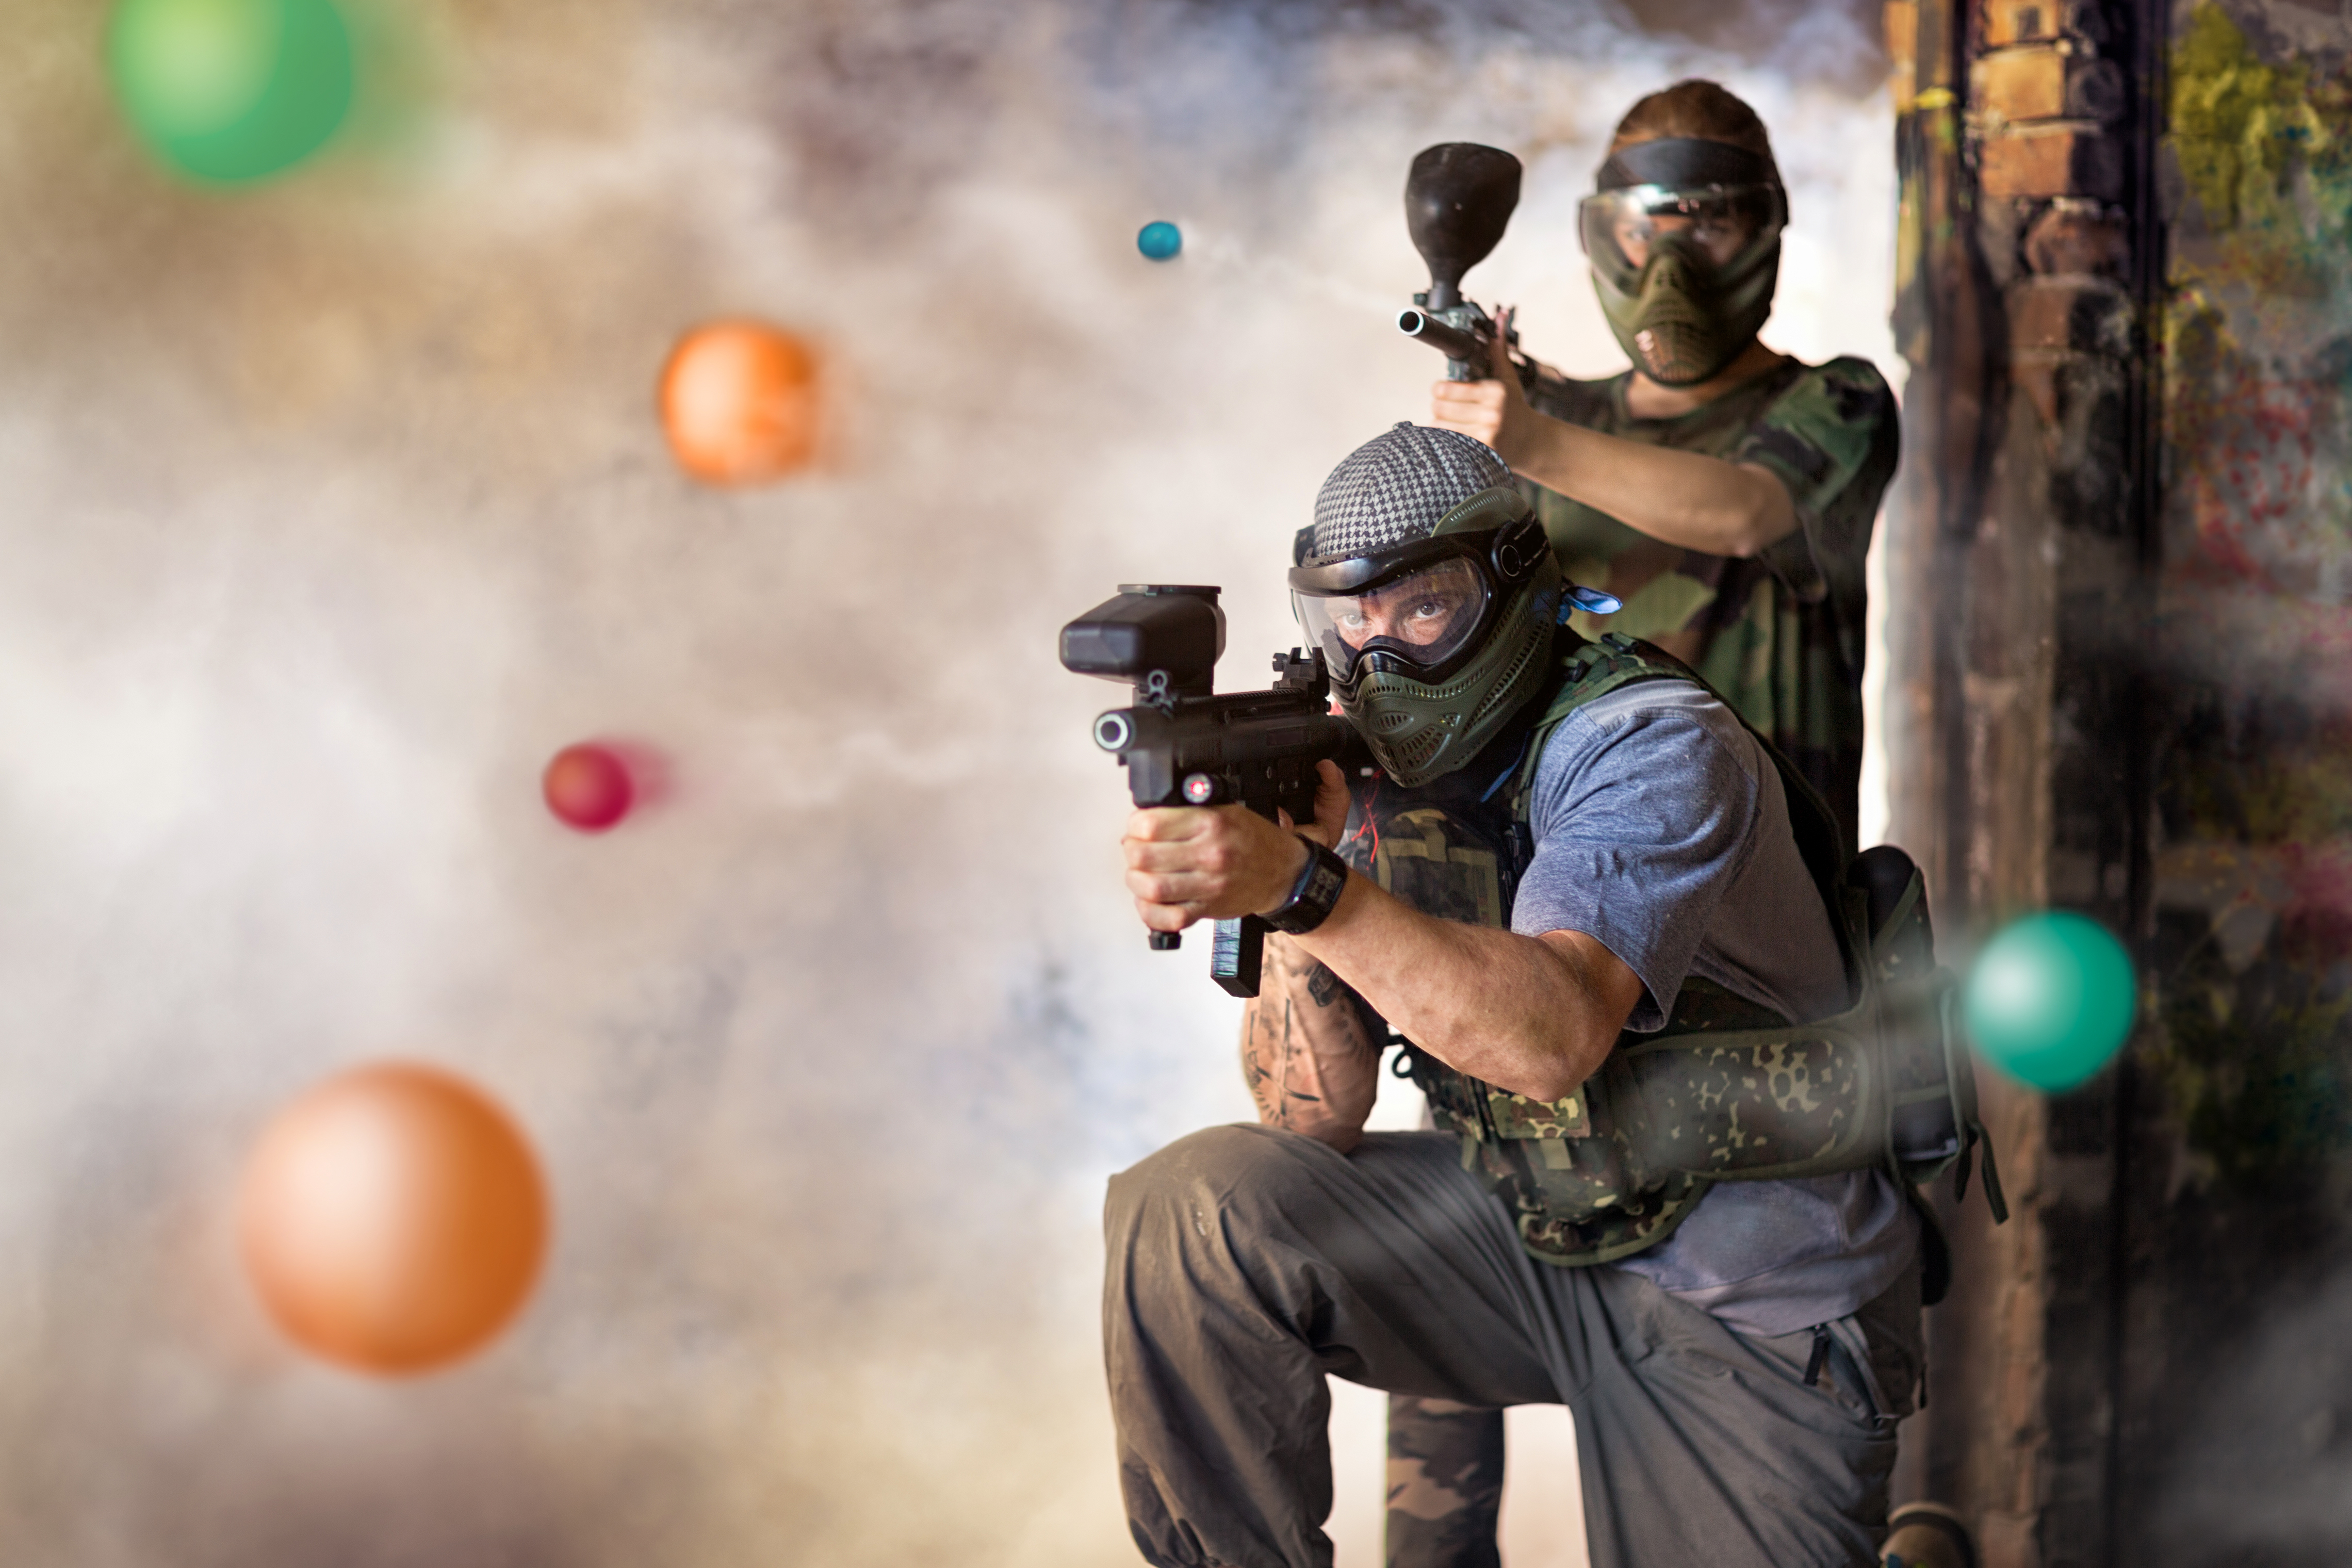 The Game of Paintball in Muscat